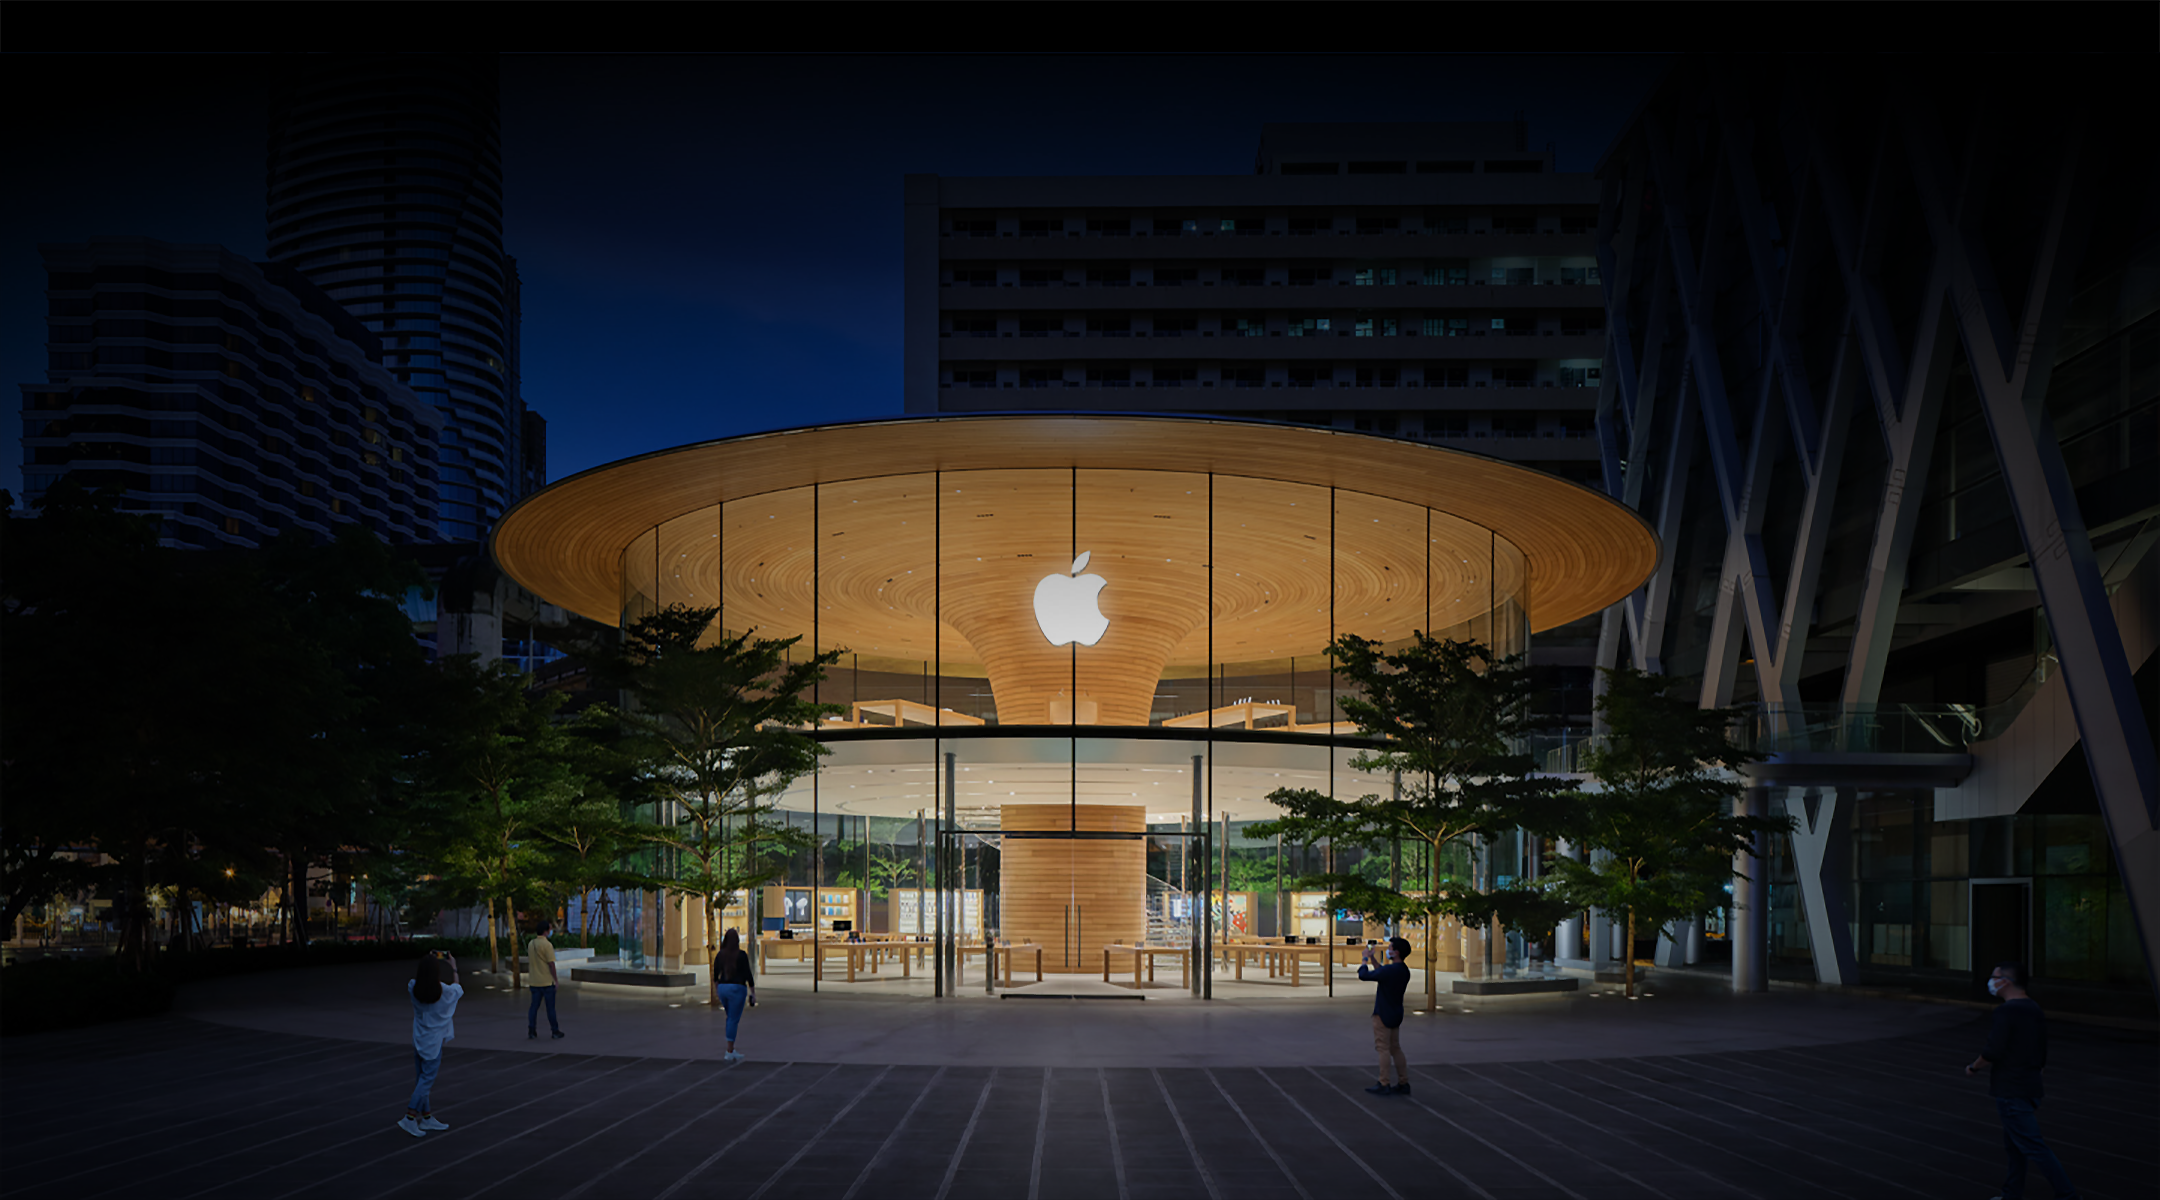 Exterior of an Apple Store location at night.